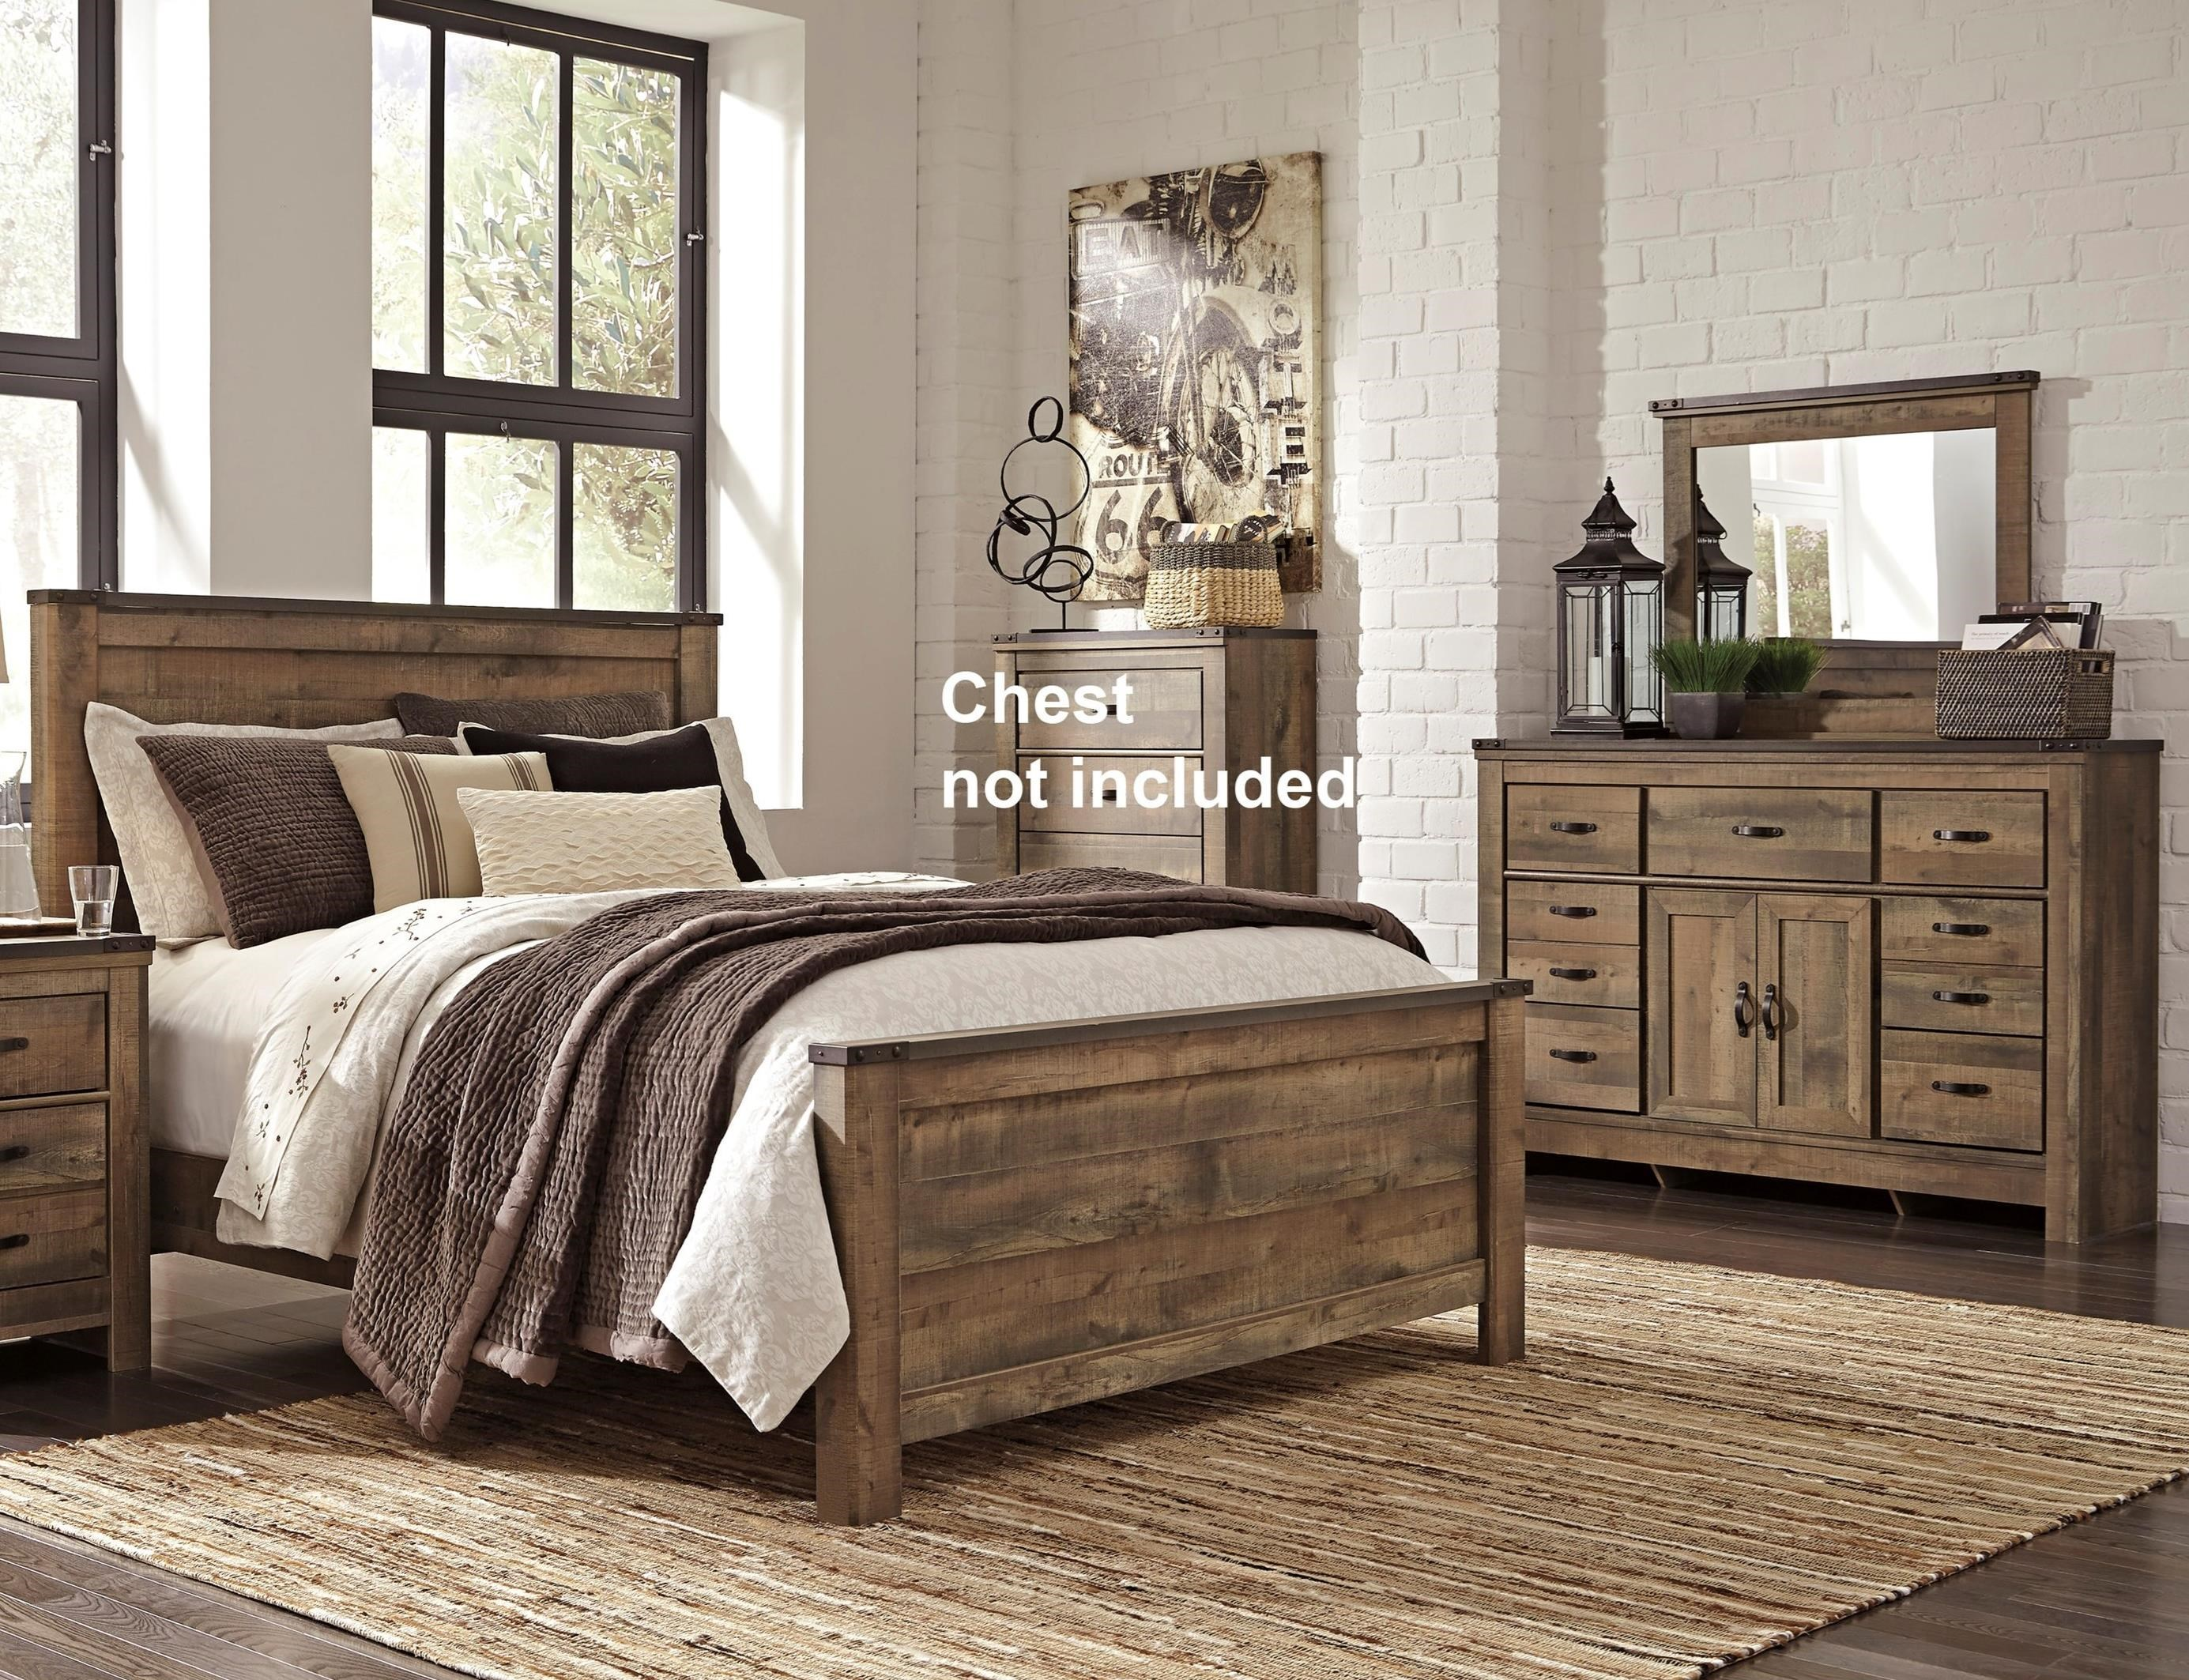 Trinell King Bedroom Group by Signature Design by Ashley at Northeast Factory Direct